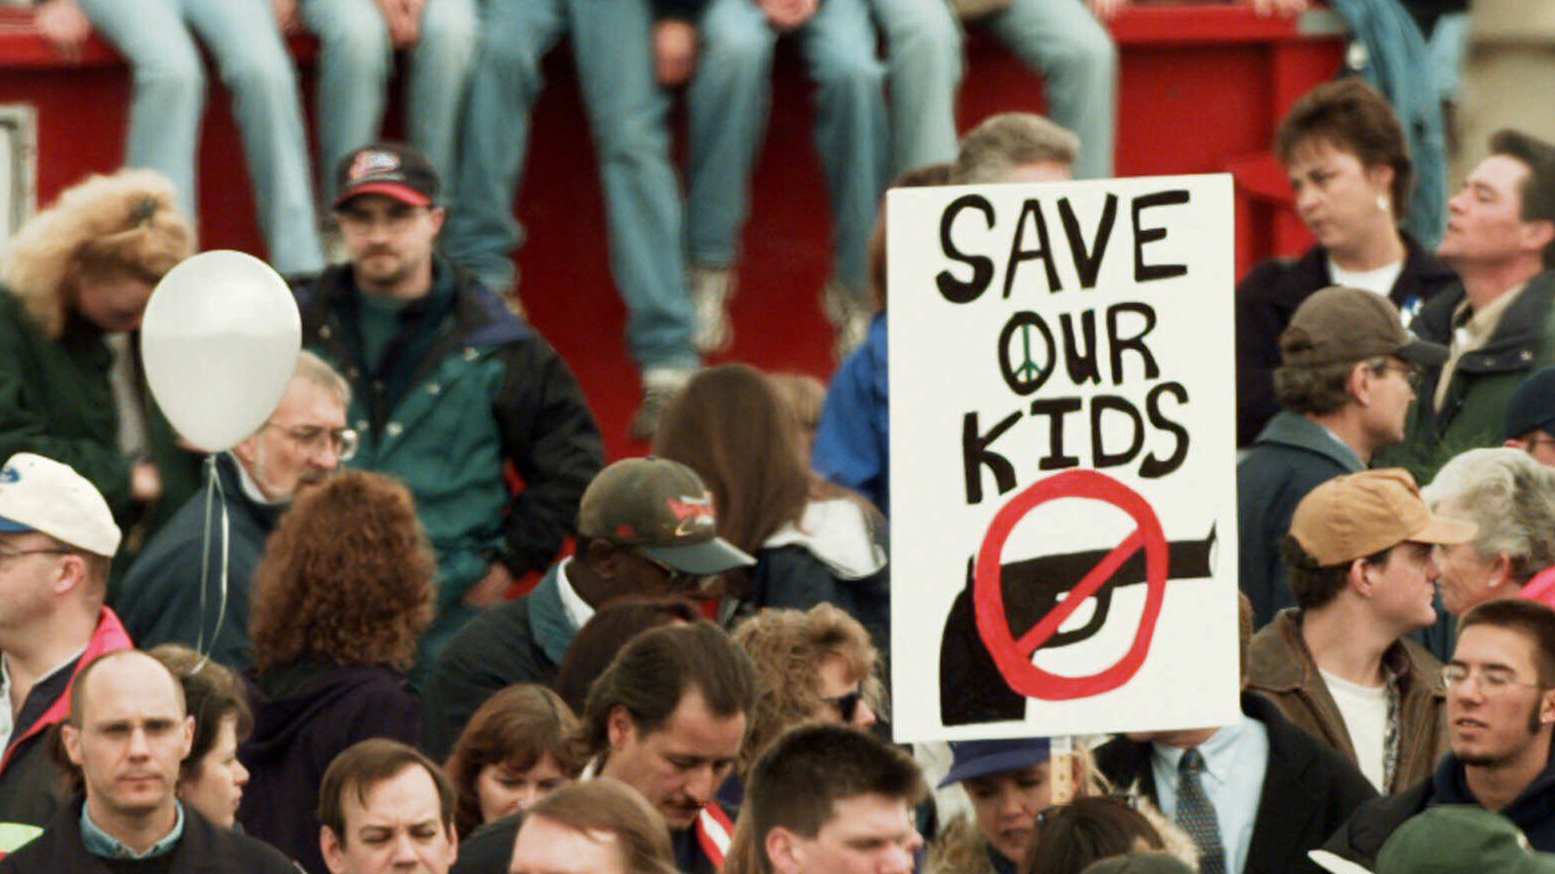 On April 25, 1999, a memorial service honors the victims of the Columbine High School shooting in Littleton, Colo.